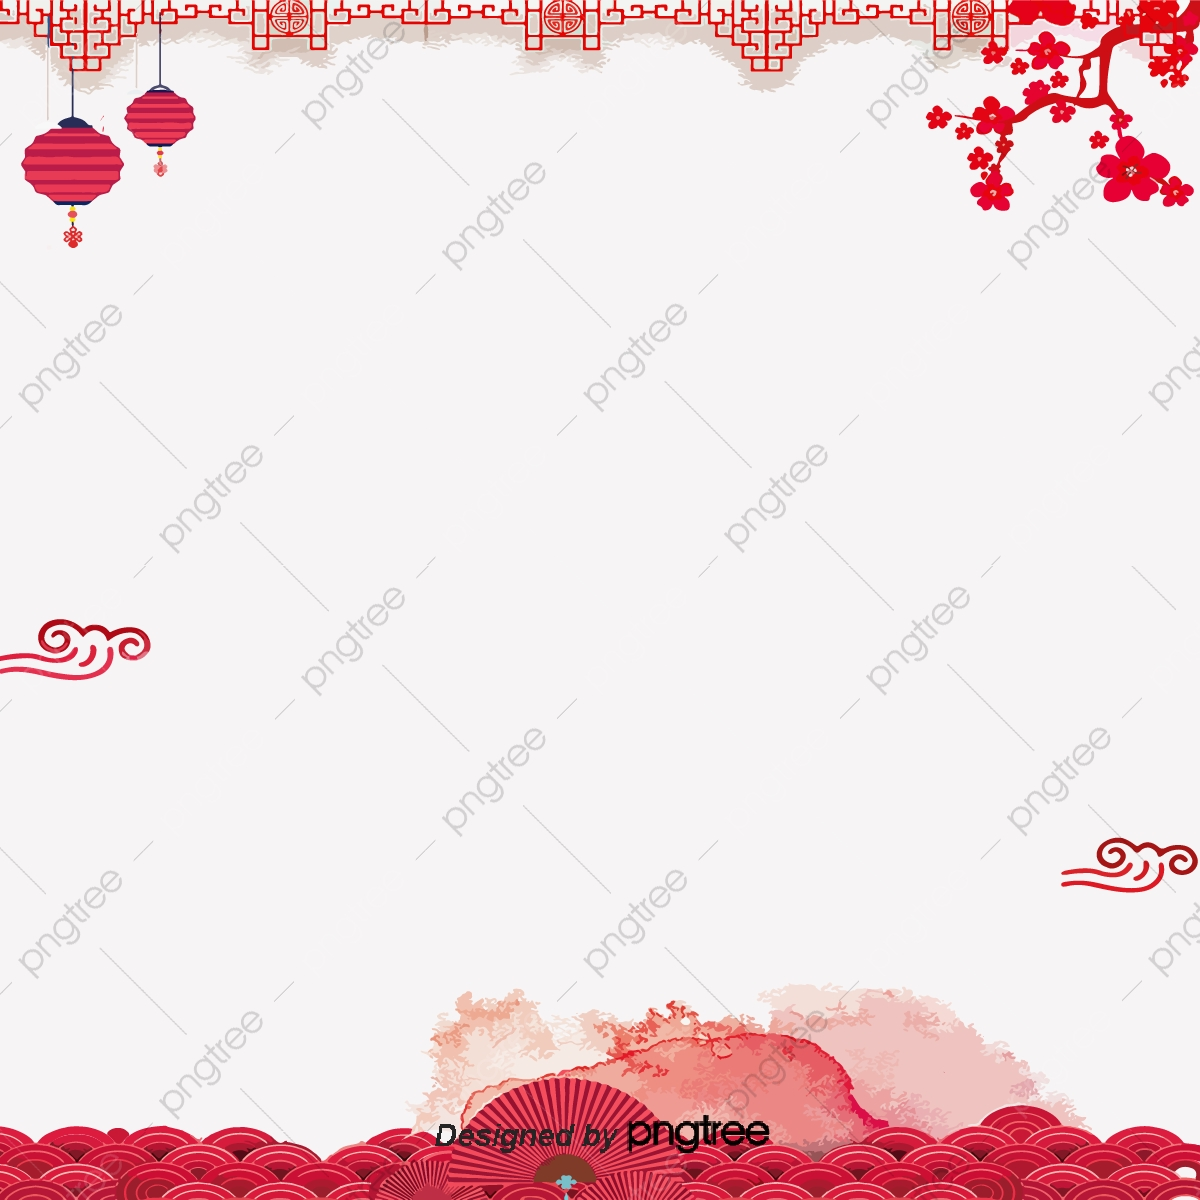 Chinese New Year Festive Red Background Chinese Clipart